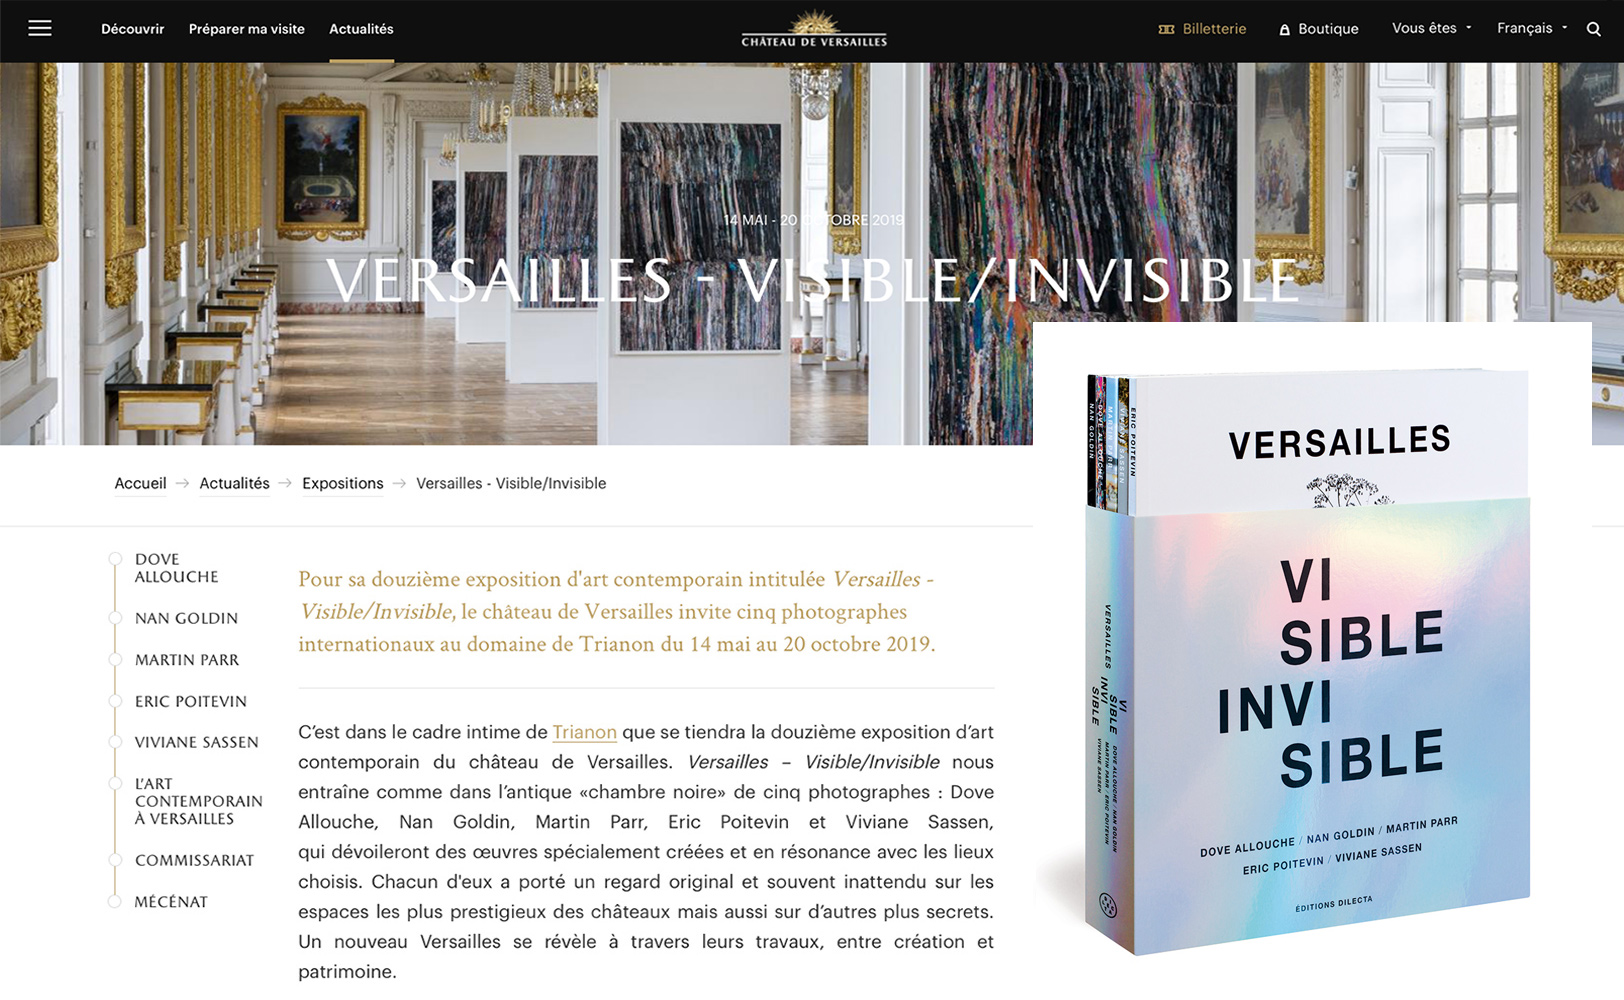 versailles-visible-invisible-toluca-studio-olivier-andreotti-site2.jpg